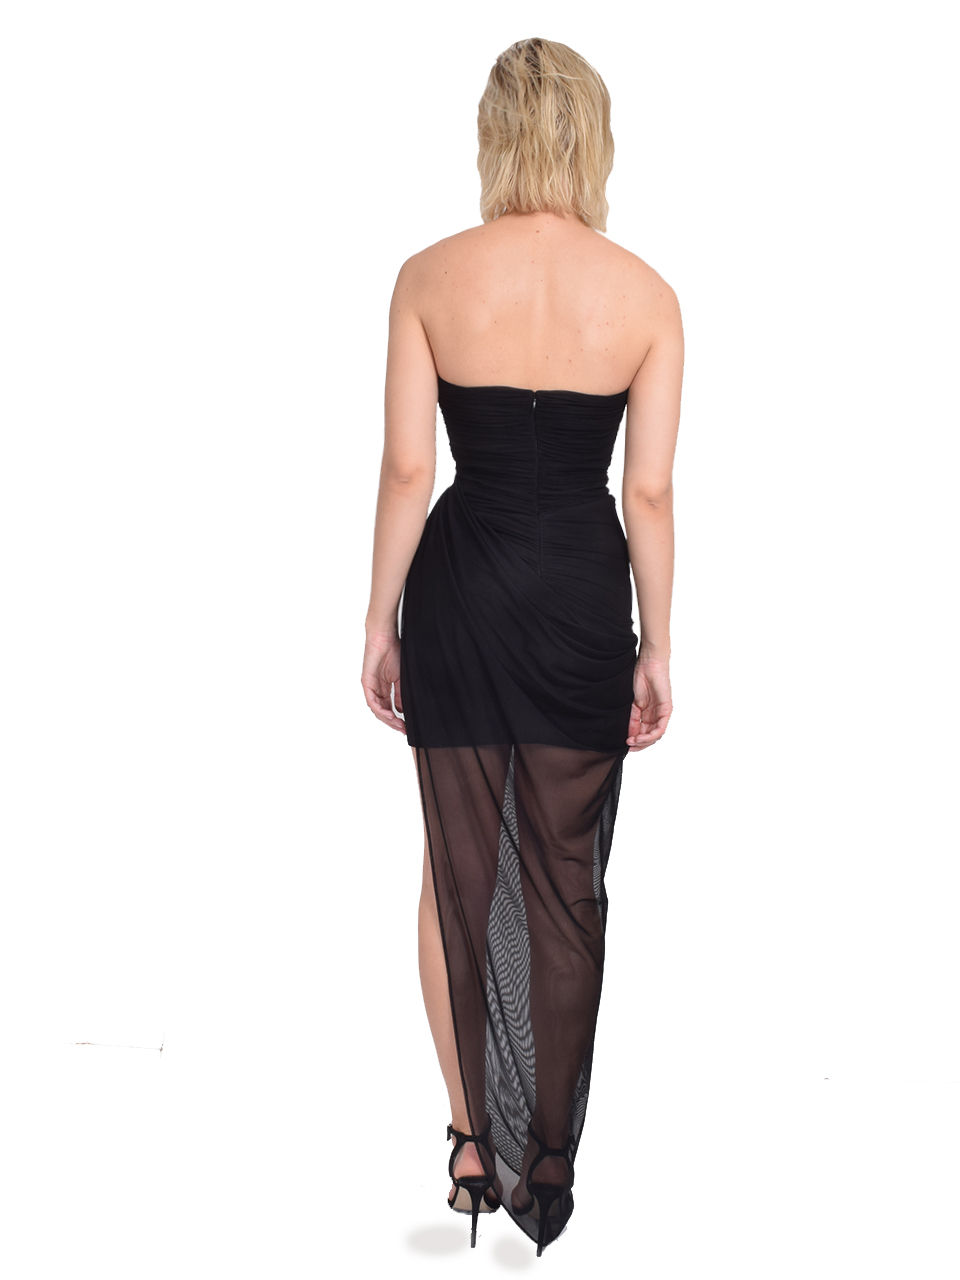 LIKELY Blakely Gown Back View